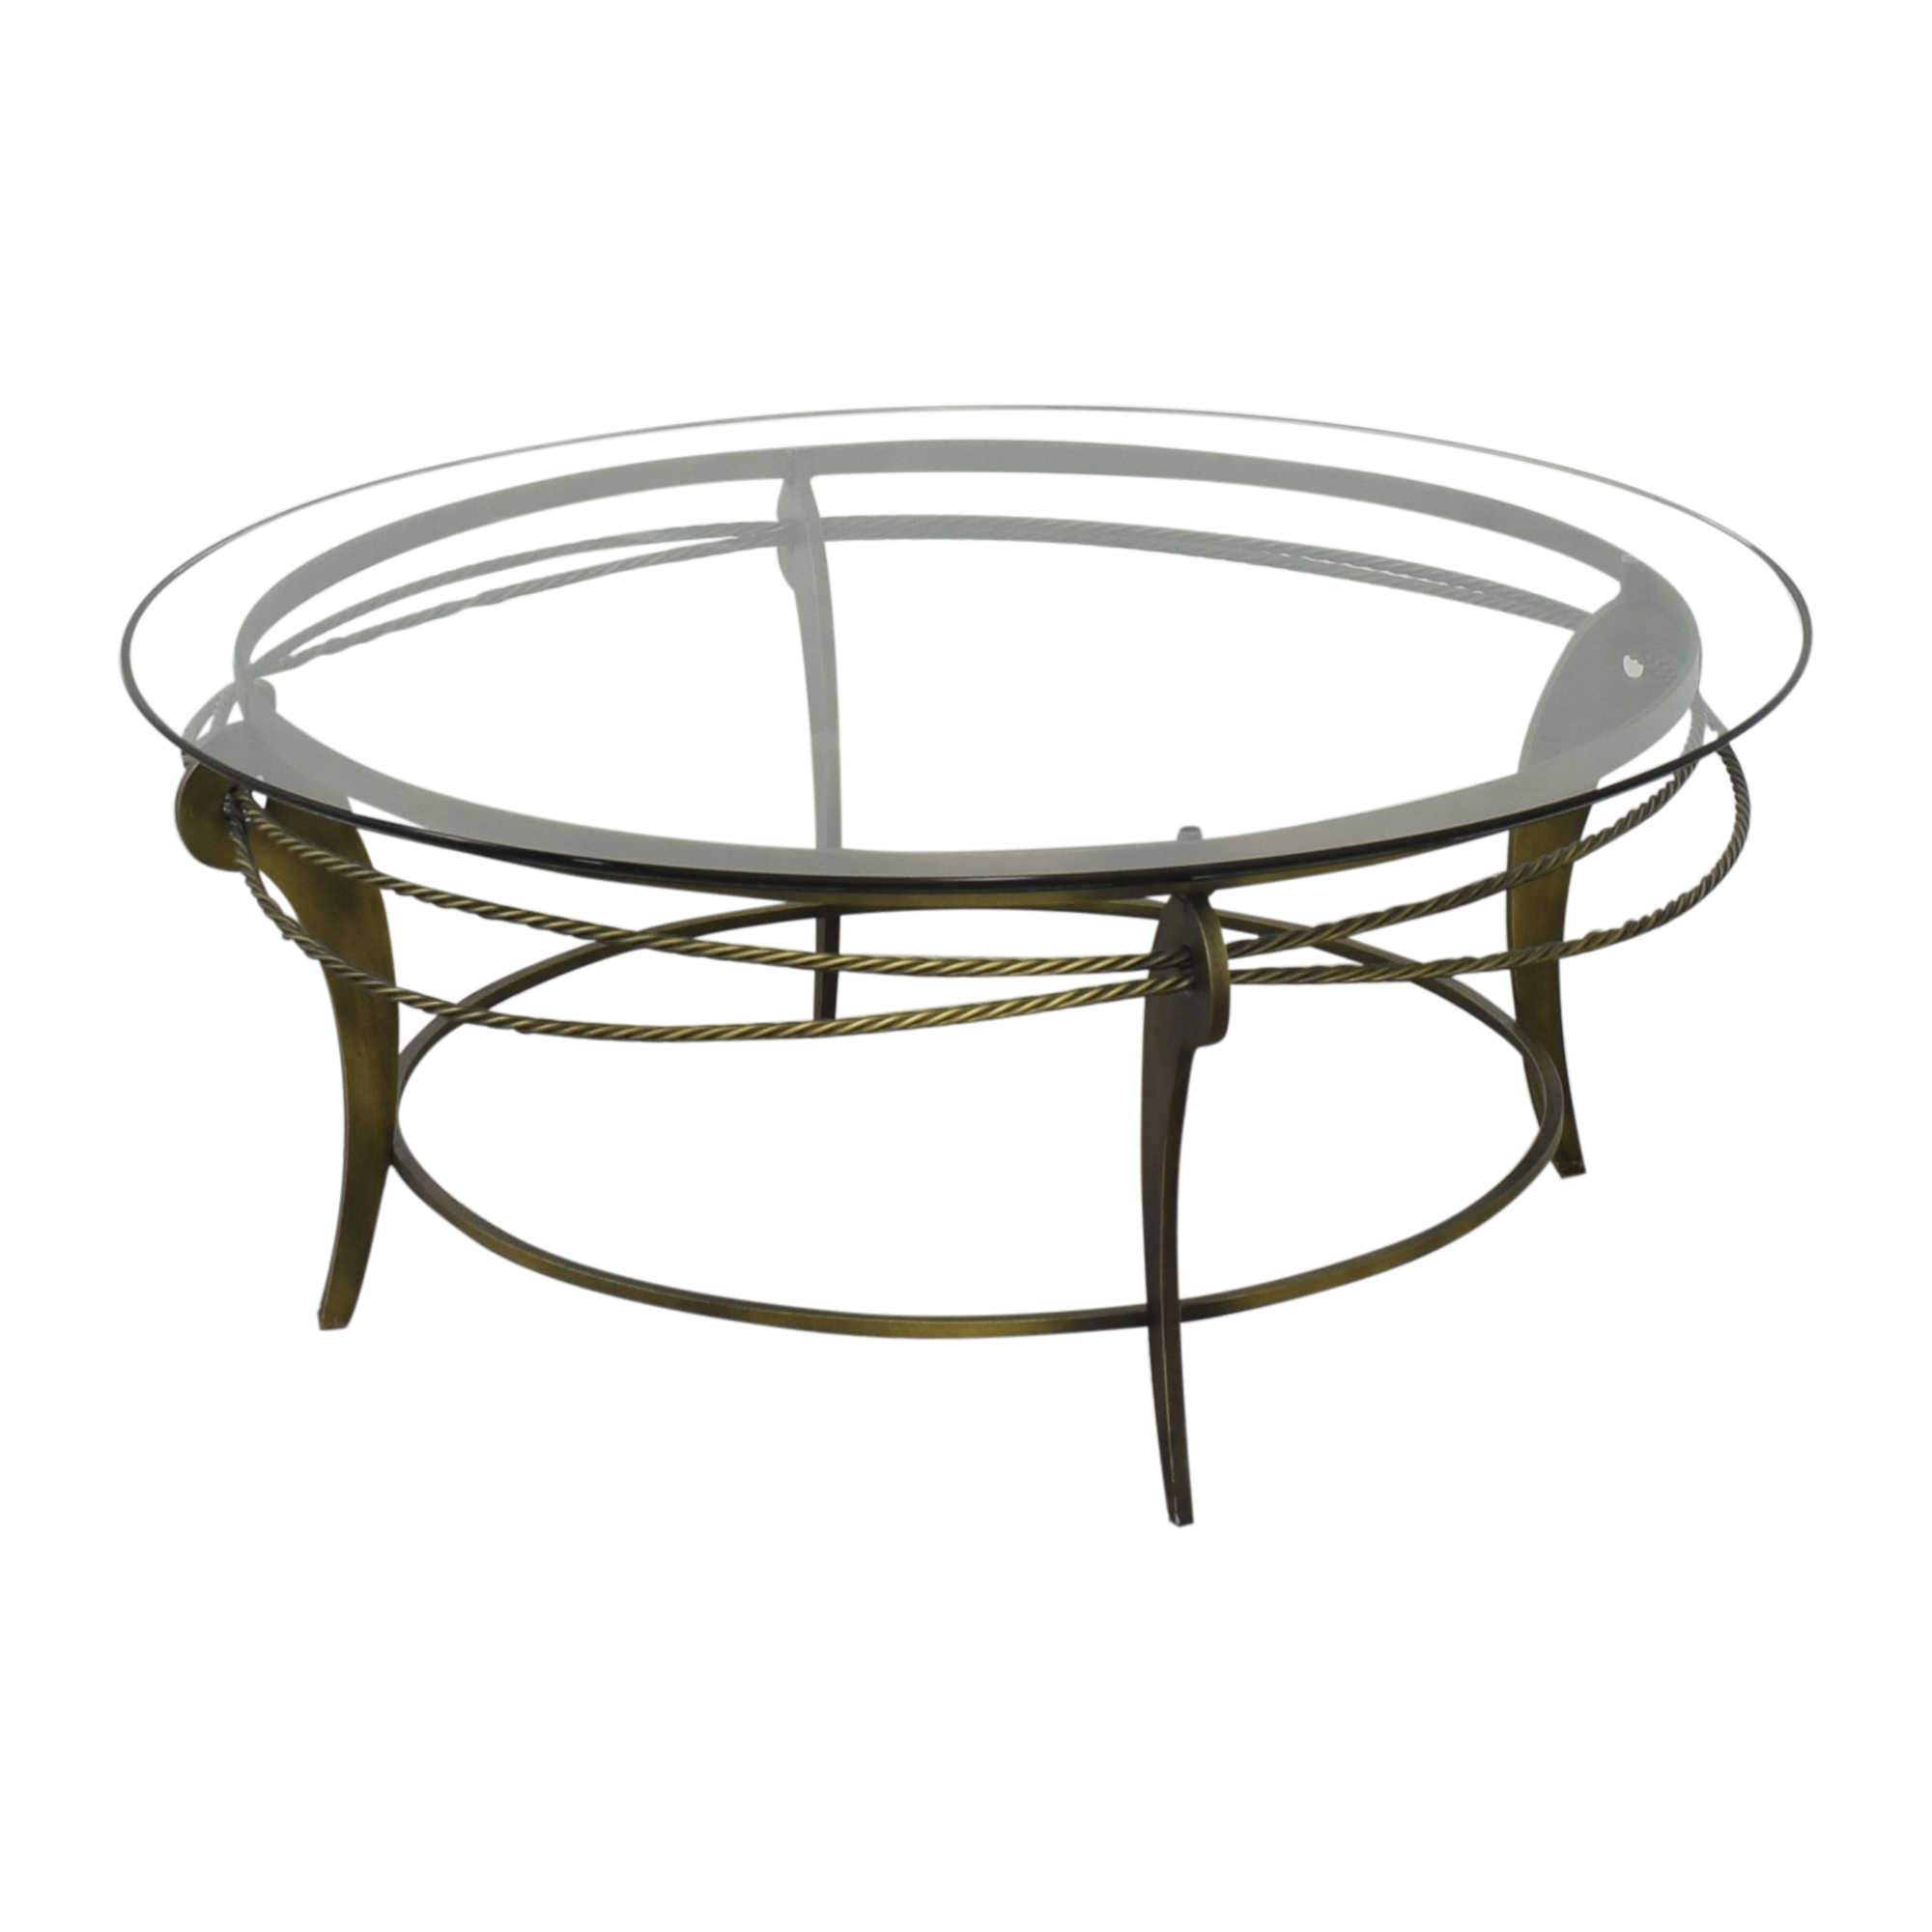 Ethan Allen Ethan Allen Round Glass and Metal Coffee Table on sale